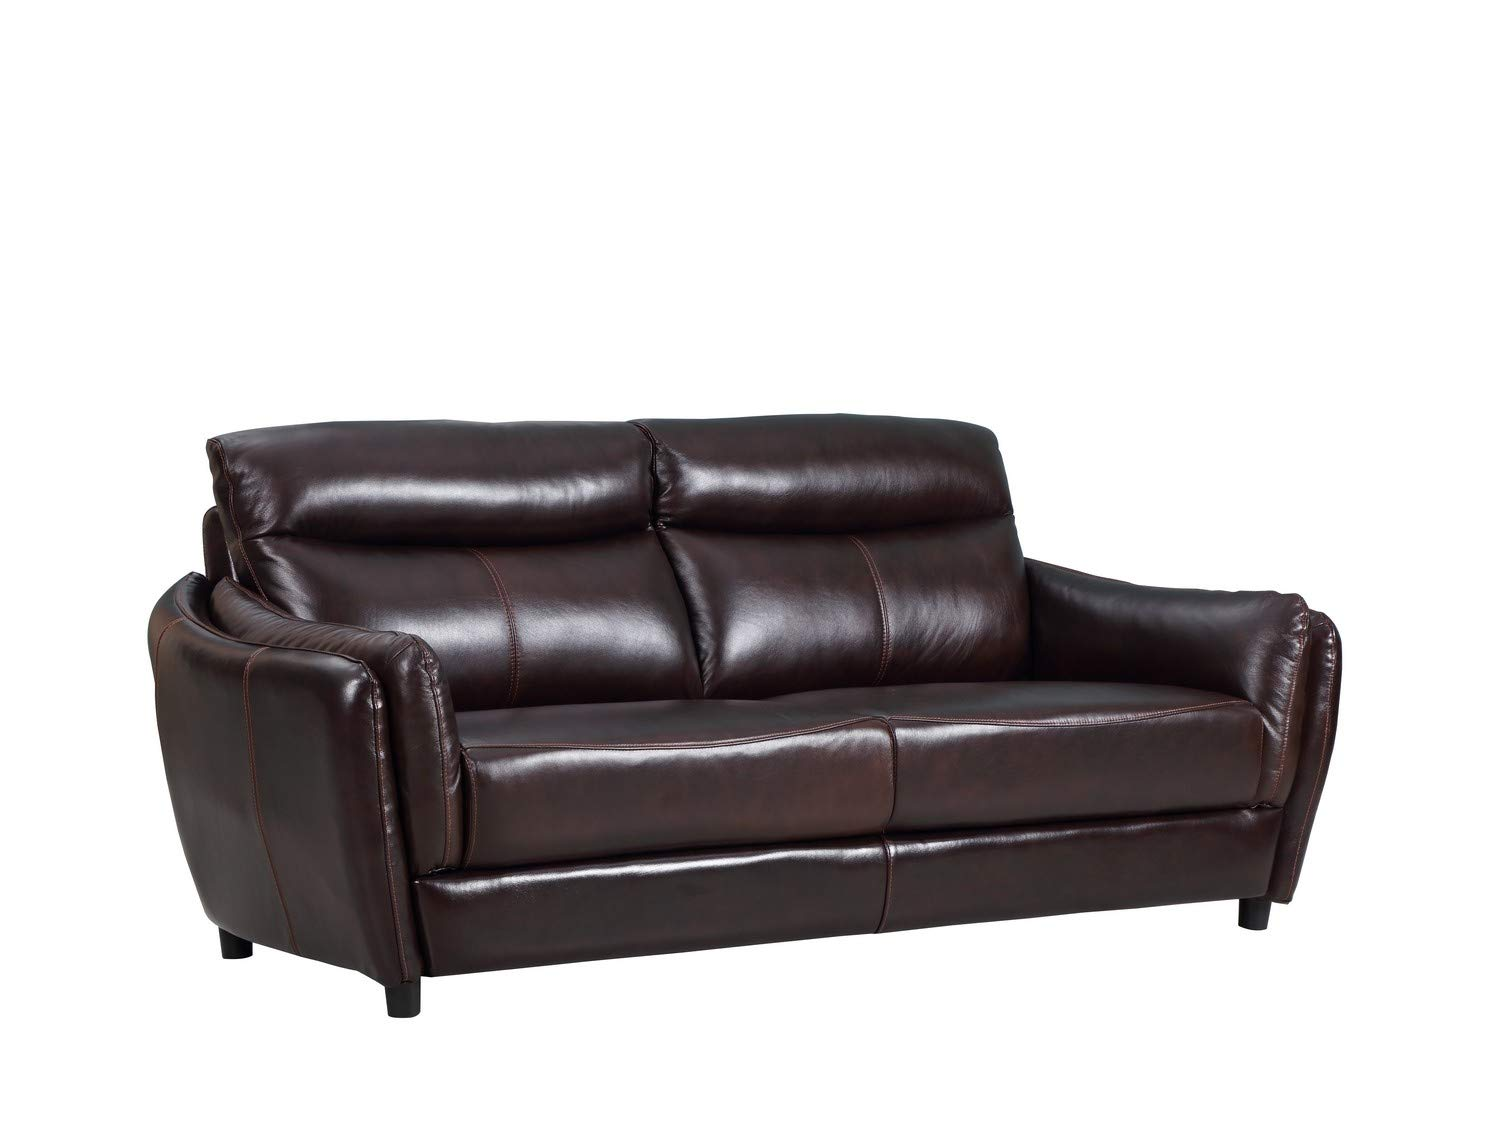 Amazon.com: Blackjack Furniture 9778-BROWN-S Troy Classic ...